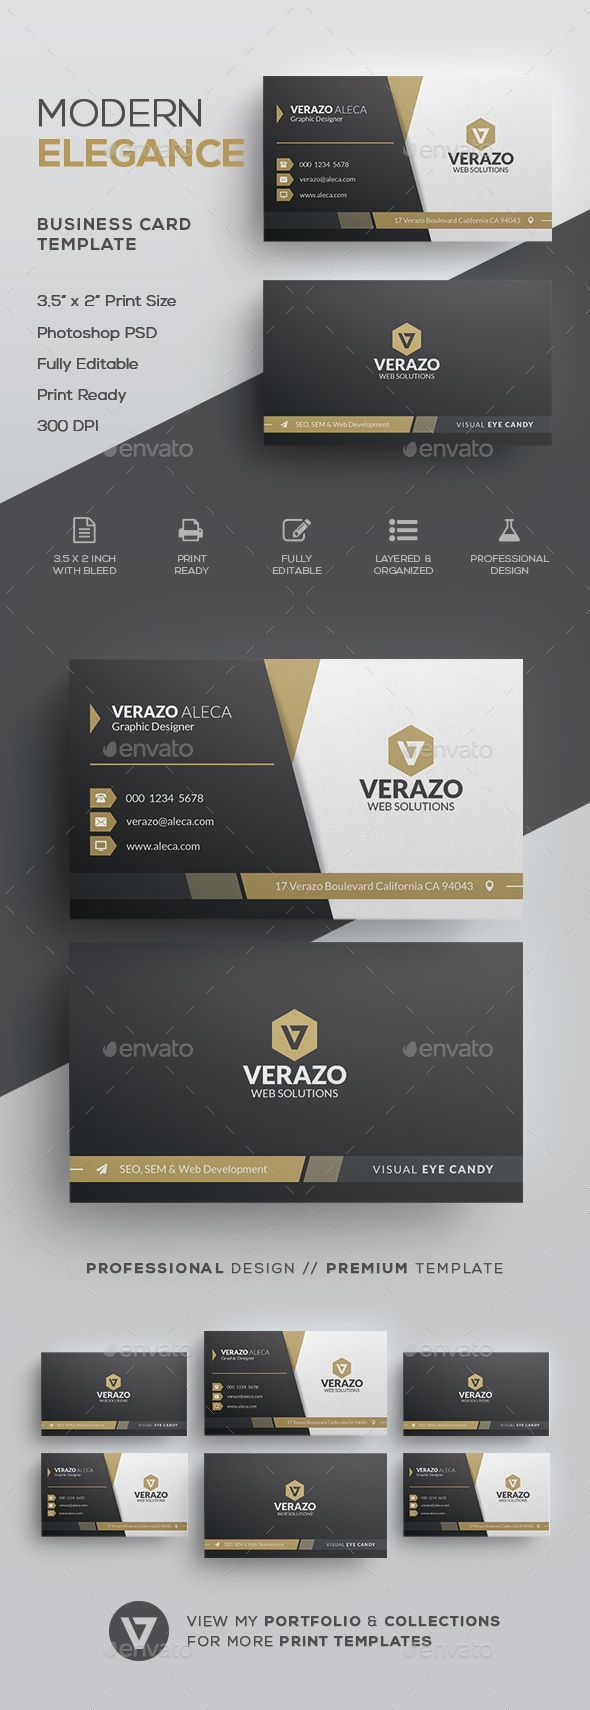 Elegant business card template corporate business cards download elegant business card template corporate business cards download here https reheart Choice Image